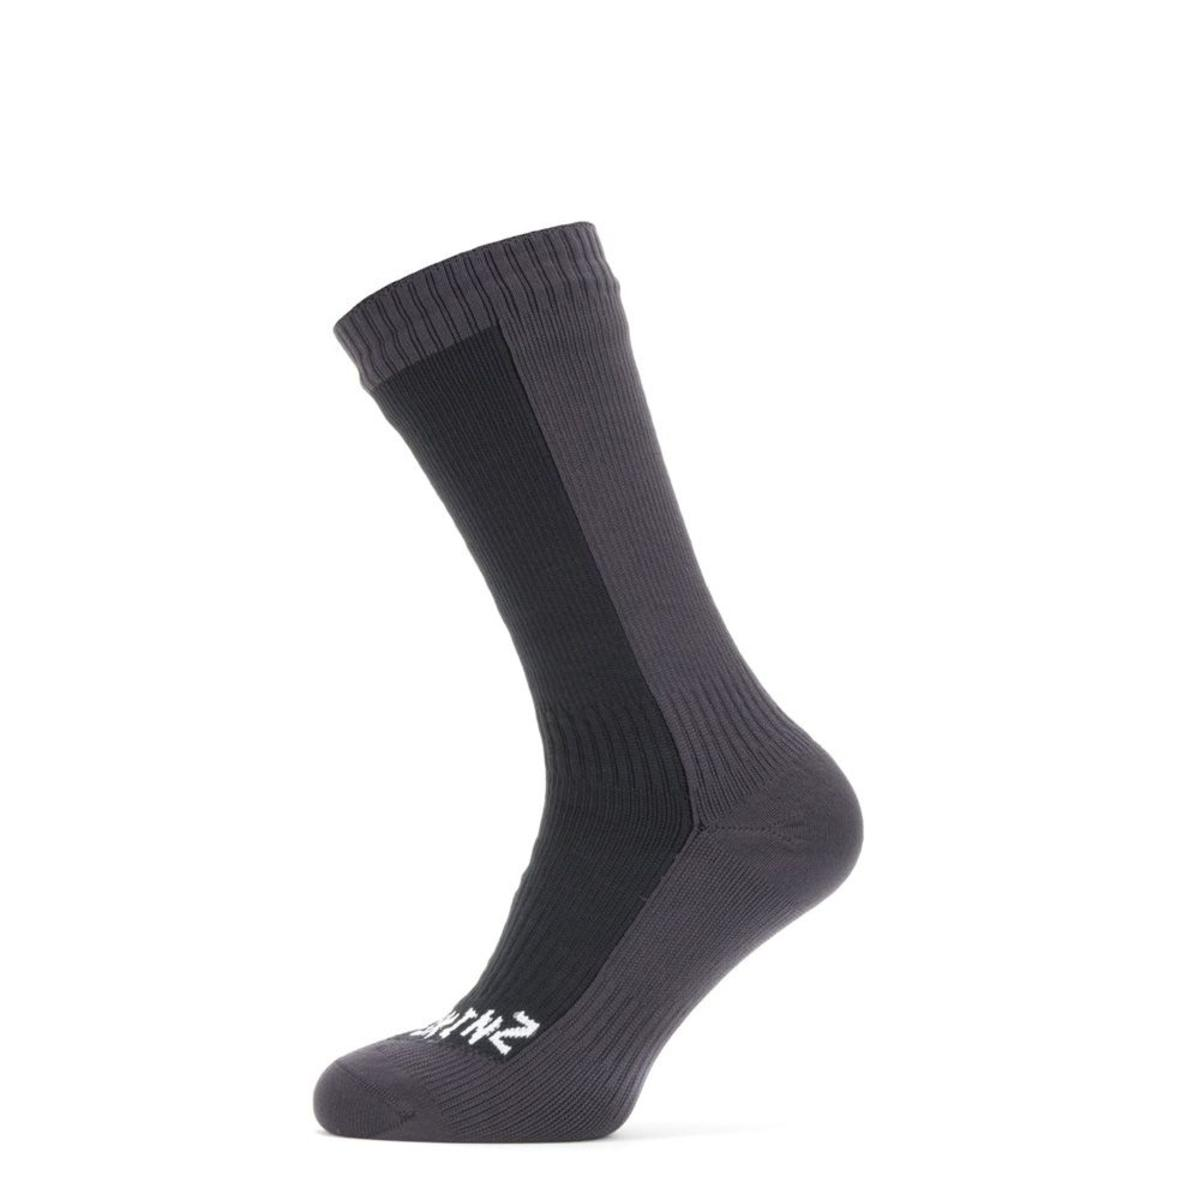 SealSkinz Men's Waterproof Cold Weather Mid Length Socks